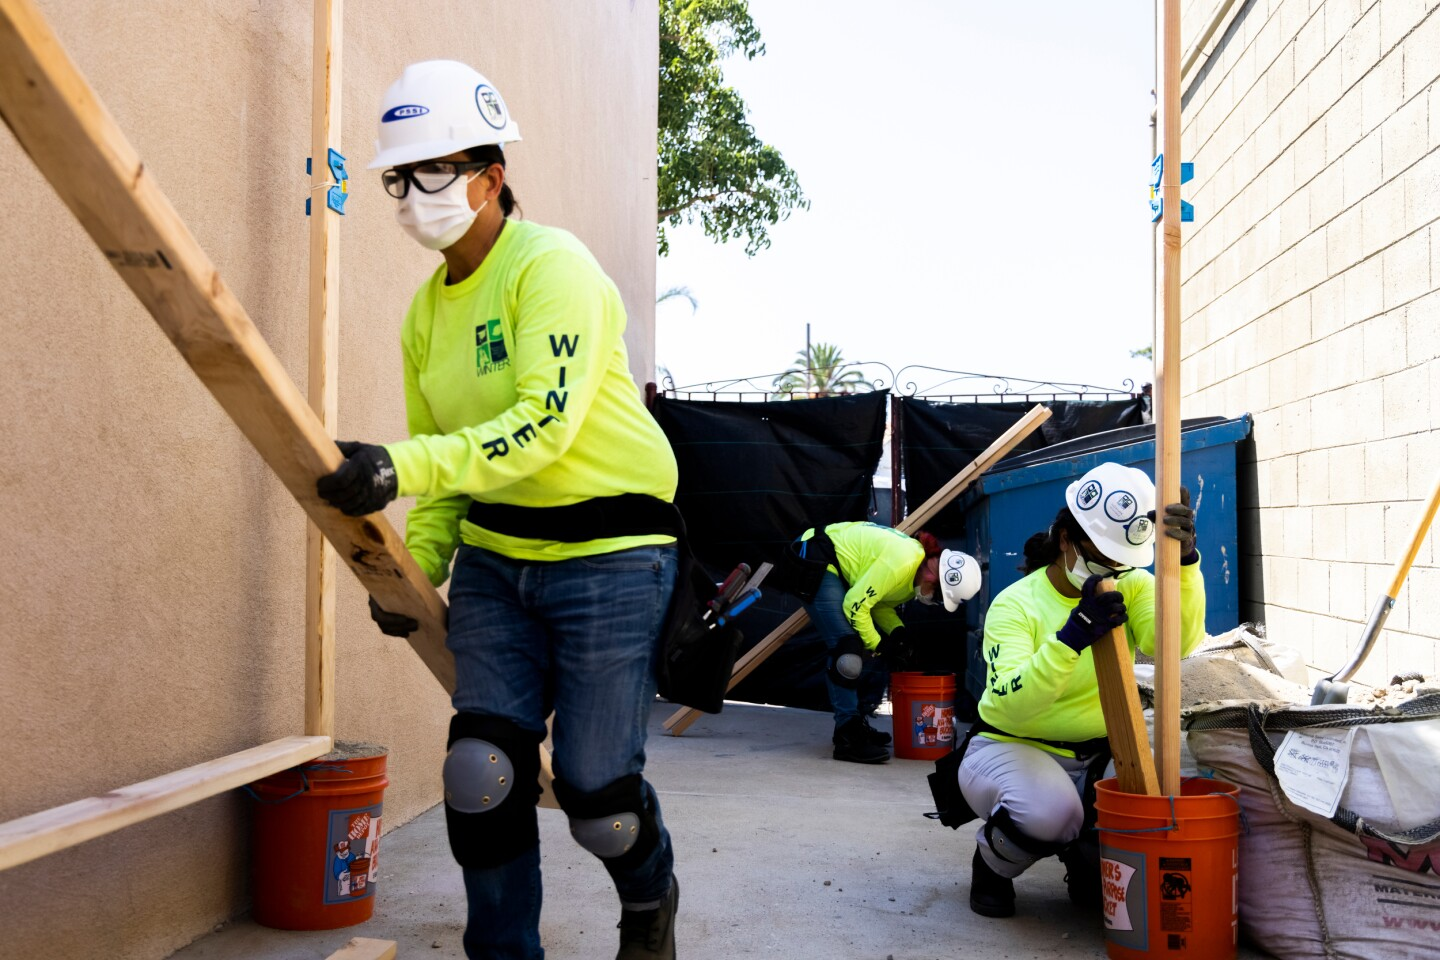 Women wearing white hard hats, safety glasses, white masks and yellow sweatshirts carry wood in a yard